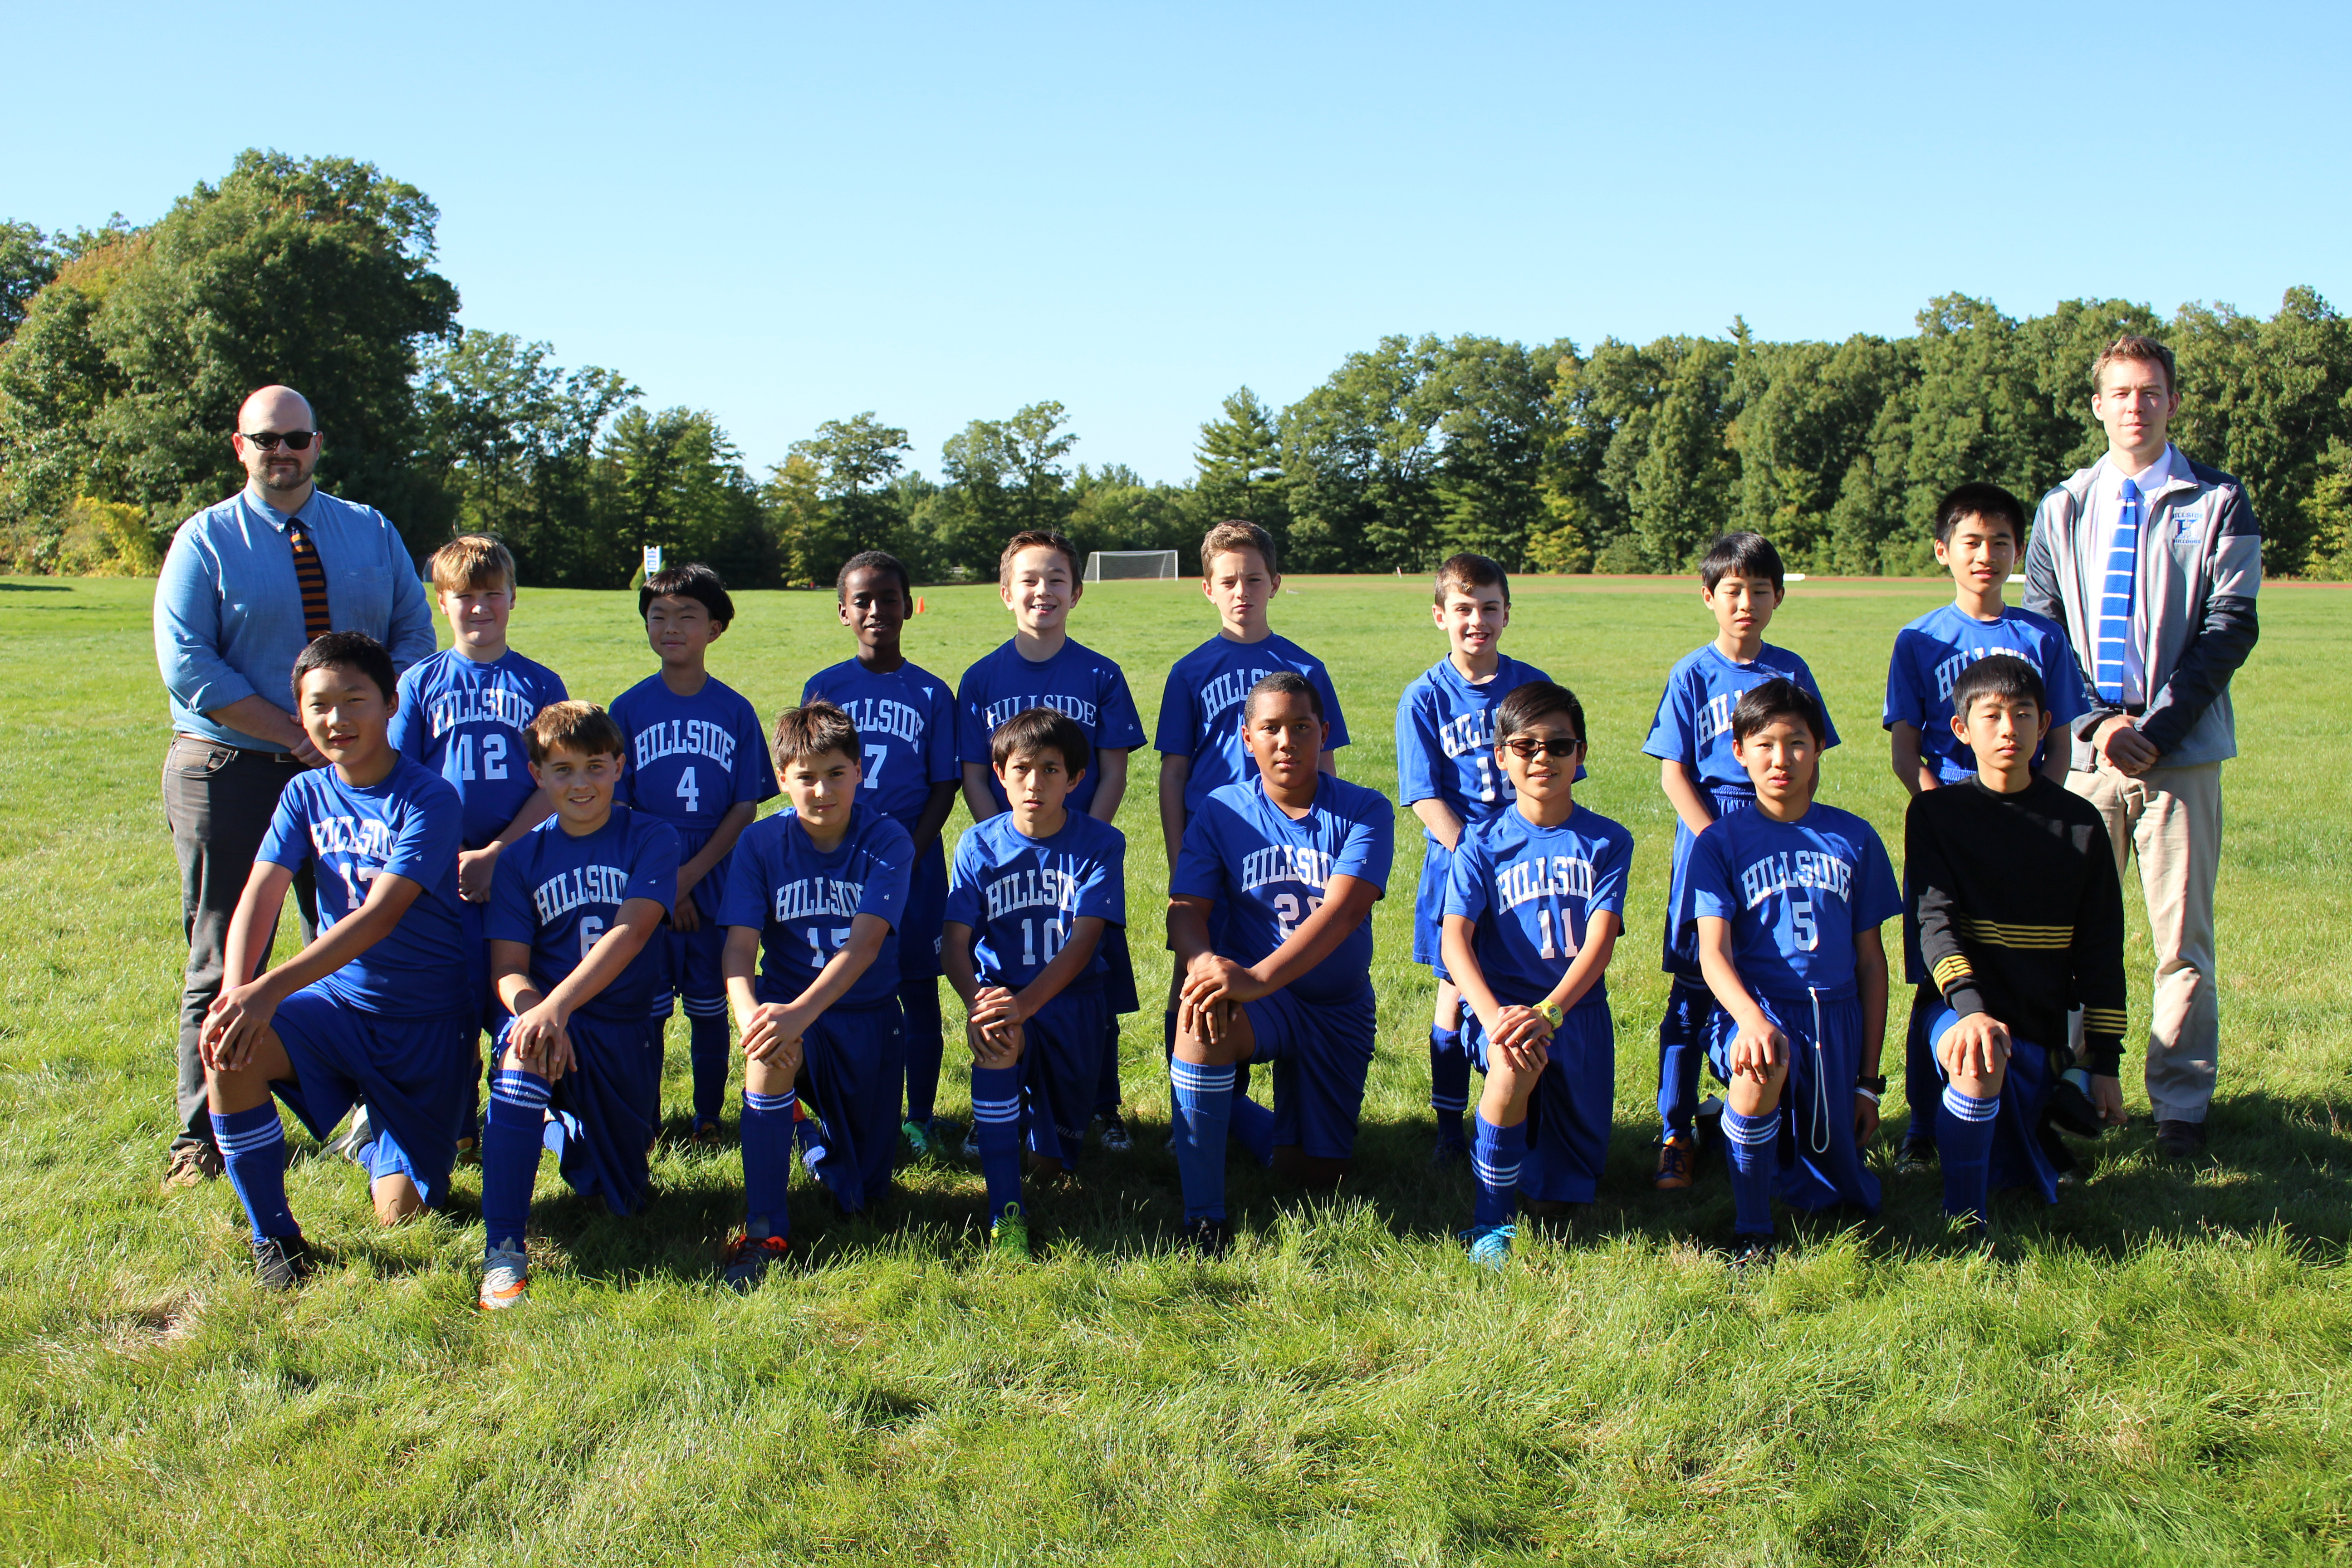 Hillside School Thirds Soccer team